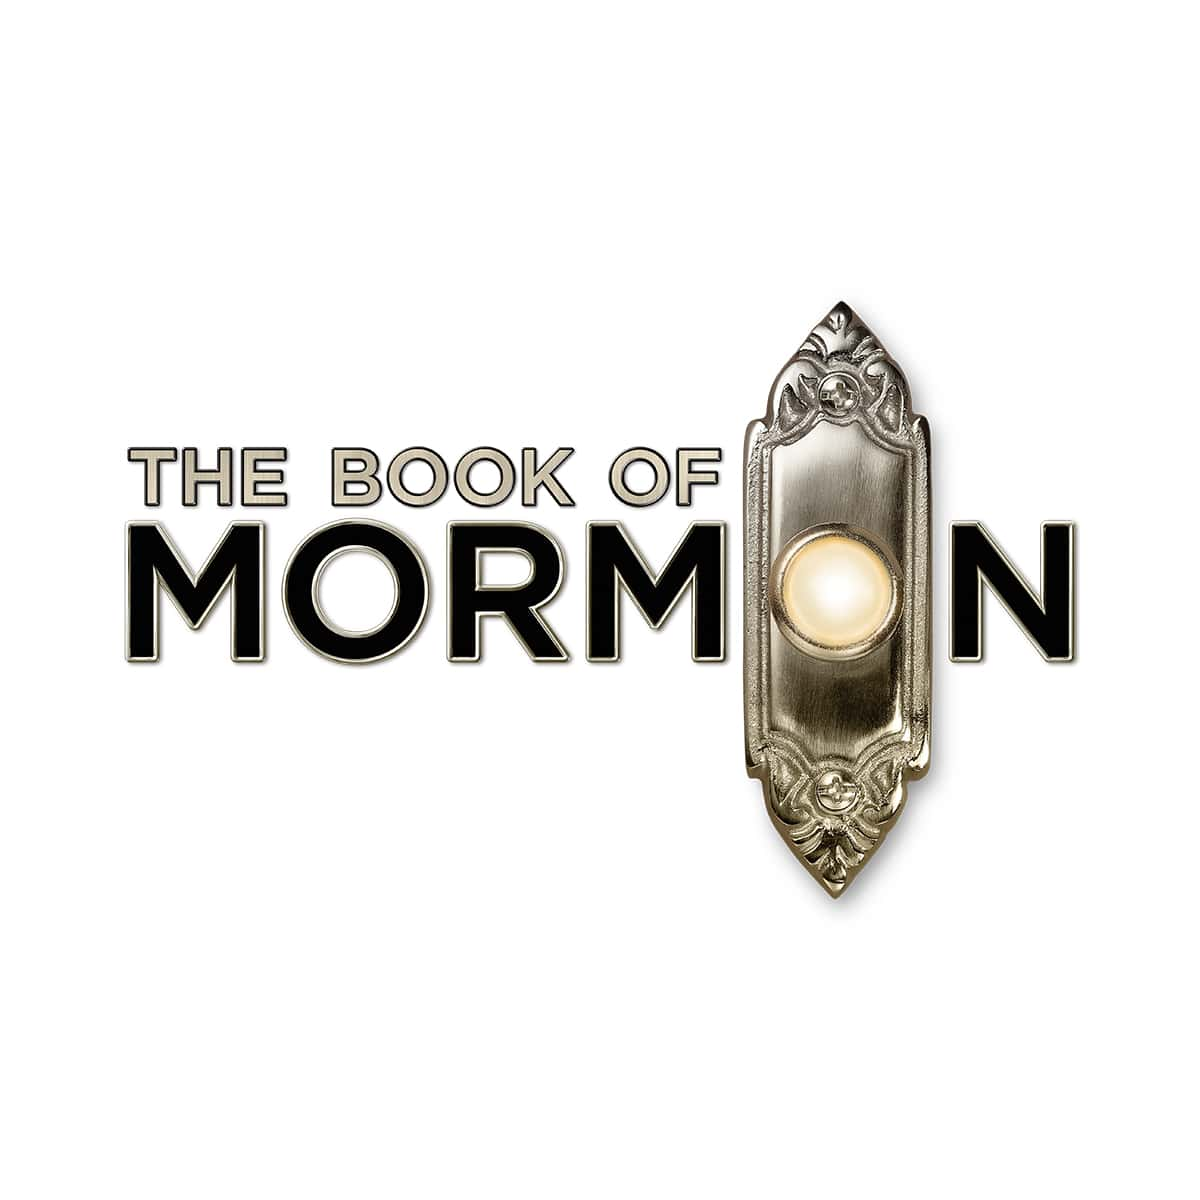 The boink of mormon